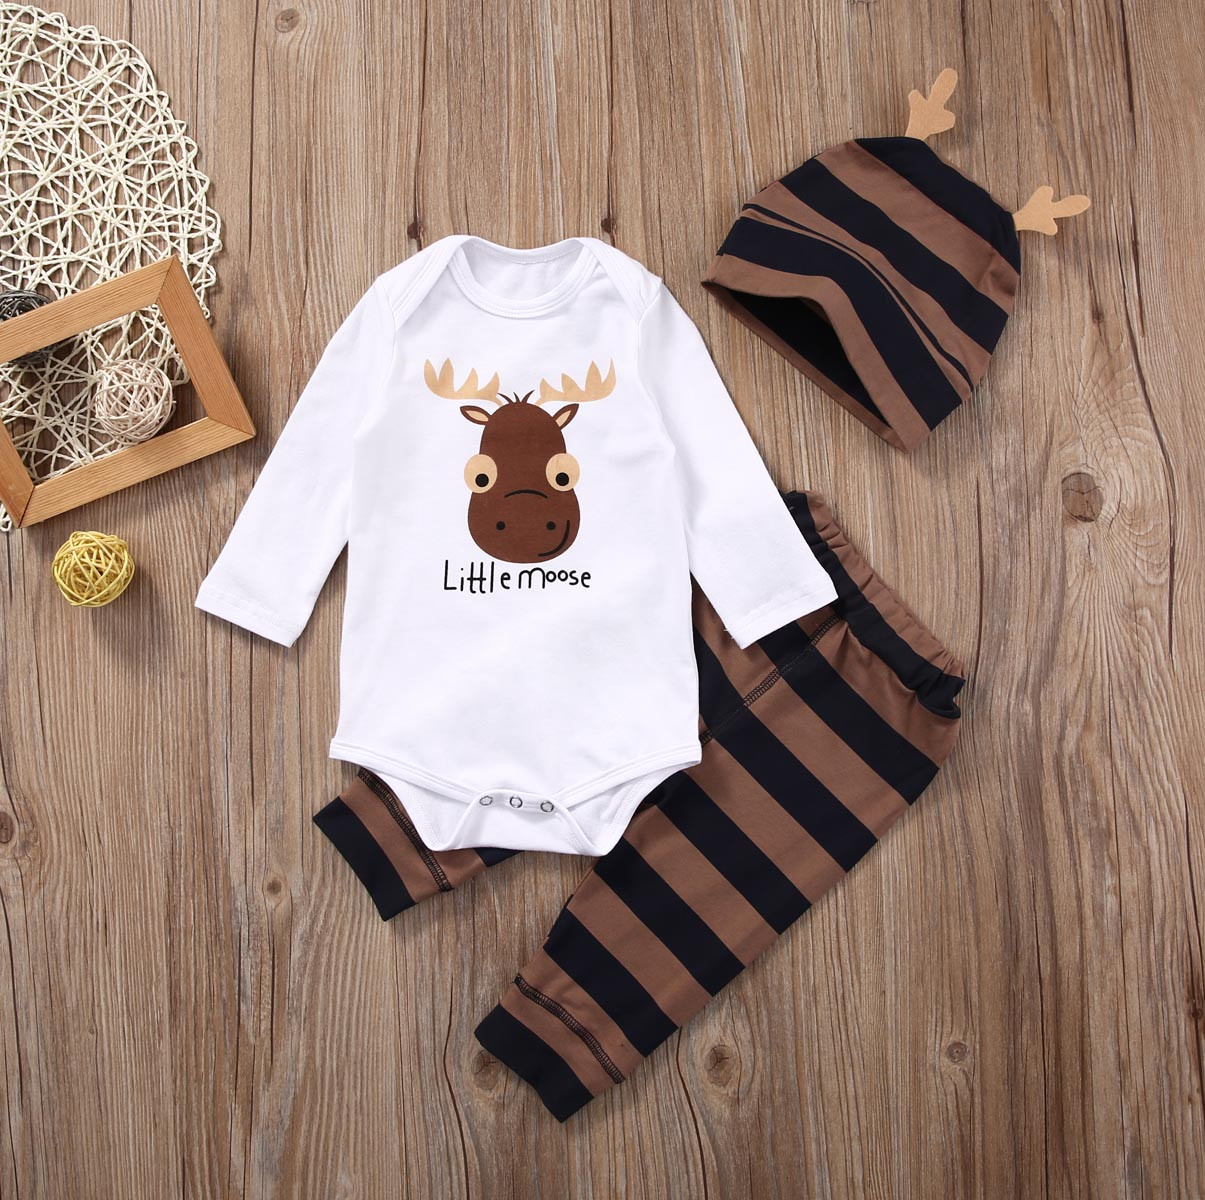 Little Moose Baby Boy Baby Girls Long Sleeve Romper & Hat